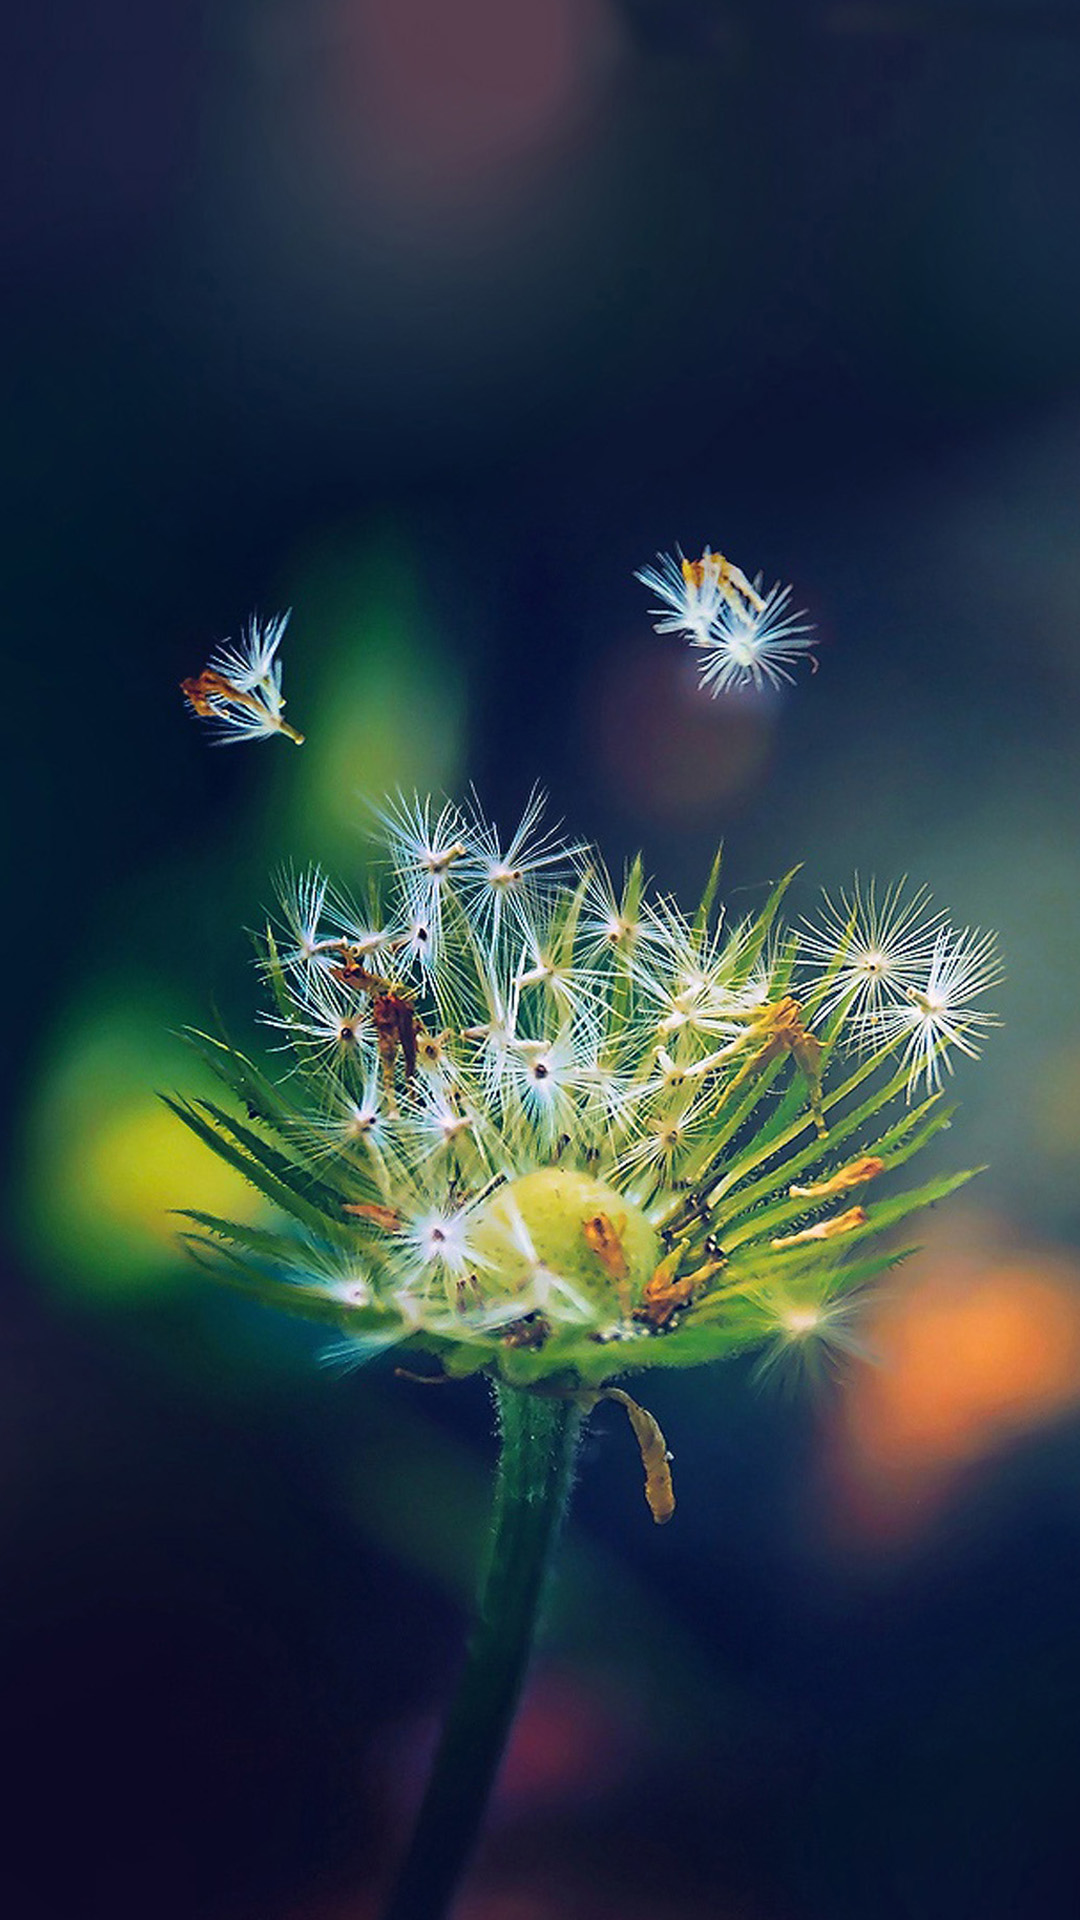 Dandelion Closeup Samsung Wallpapers, Samsung Galaxy S5, Galaxy S4 ...